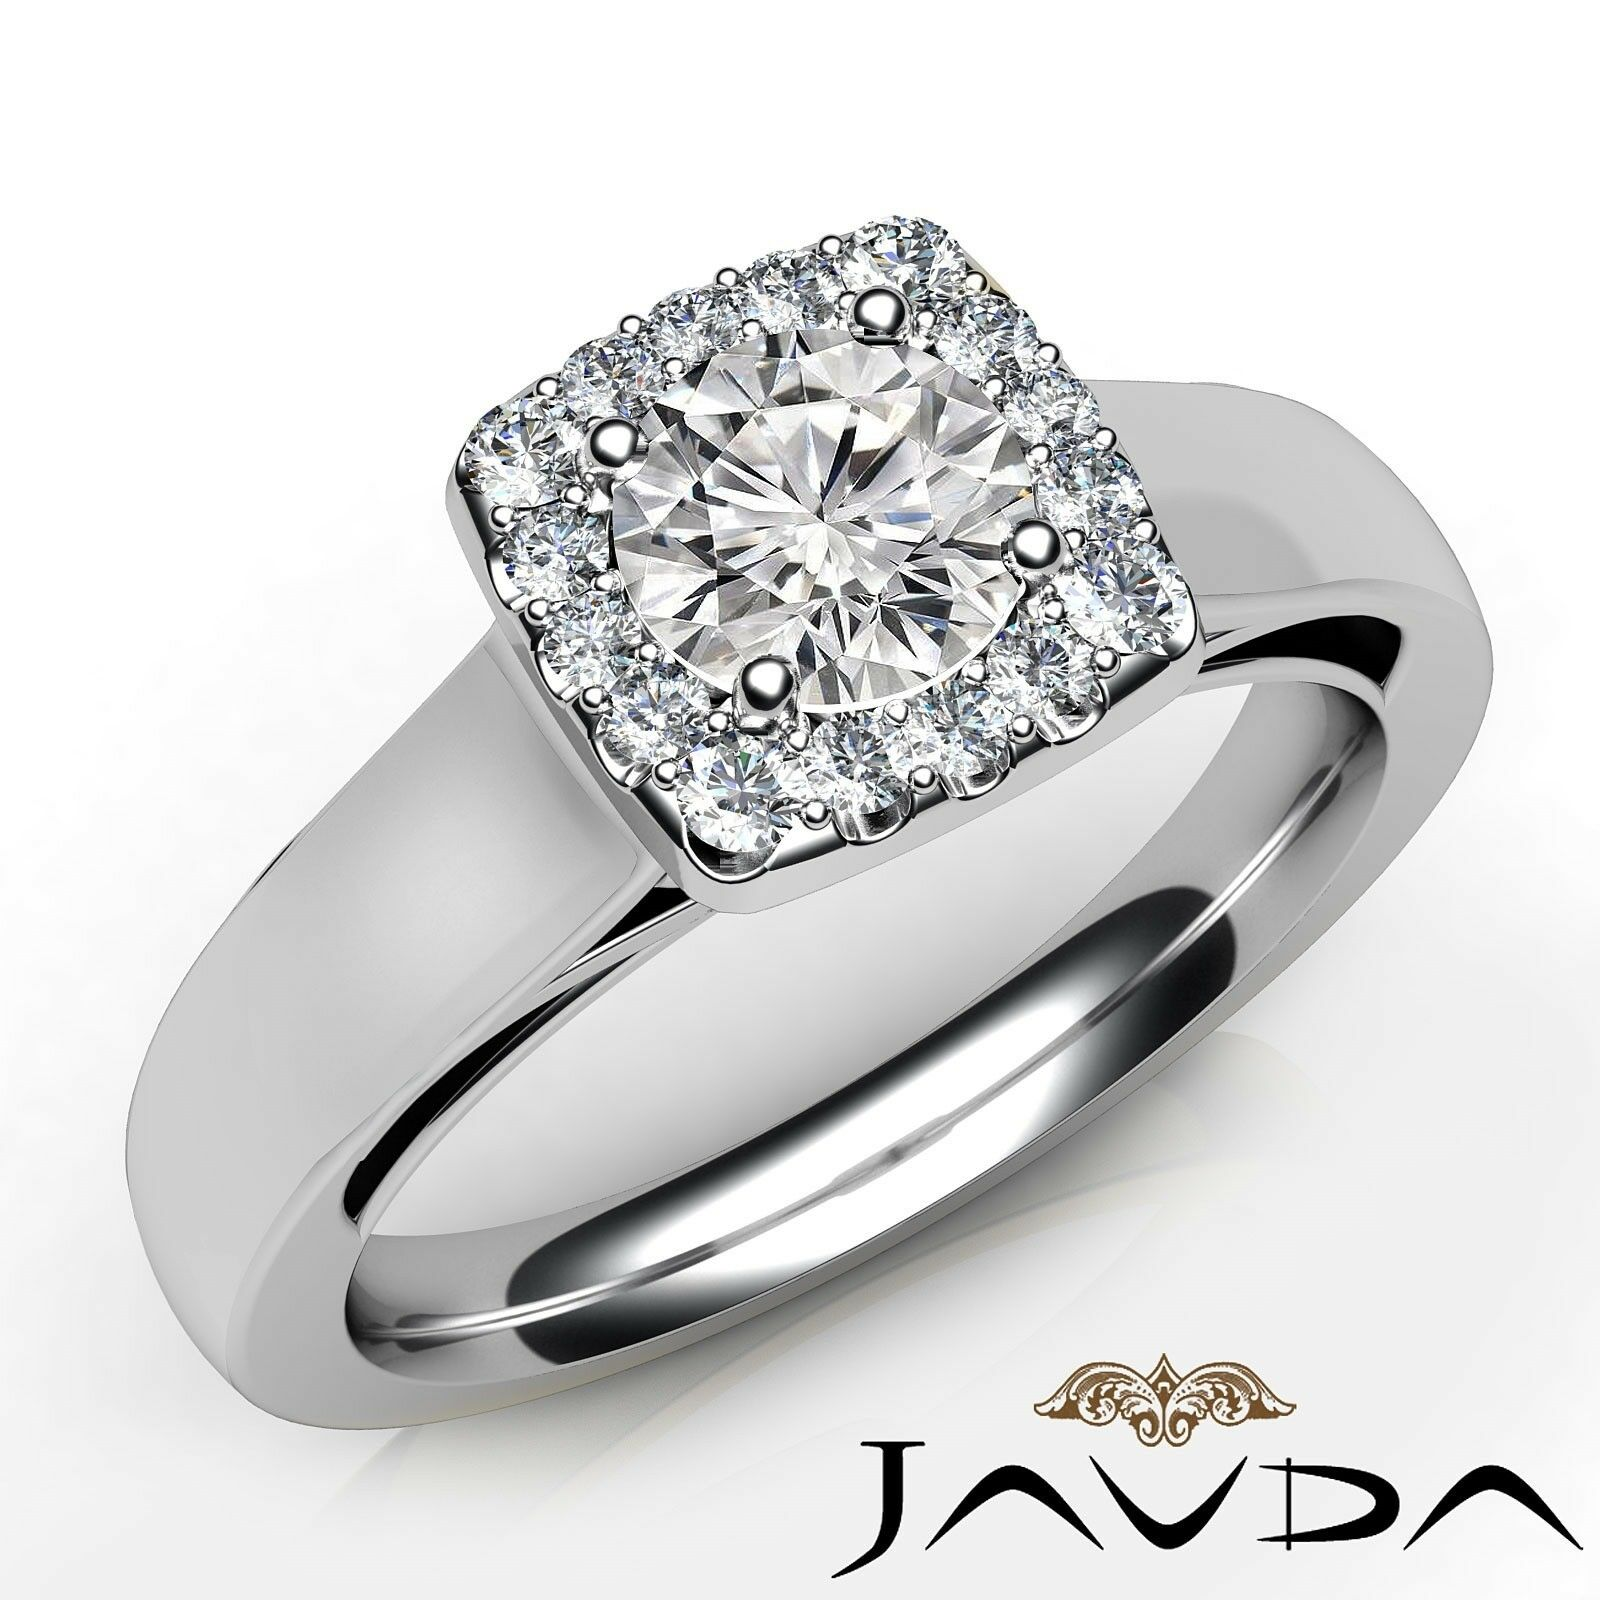 0.7ctw Certified Stone Round Diamond Engagement Ring GIA H-VVS1 White Gold Rings